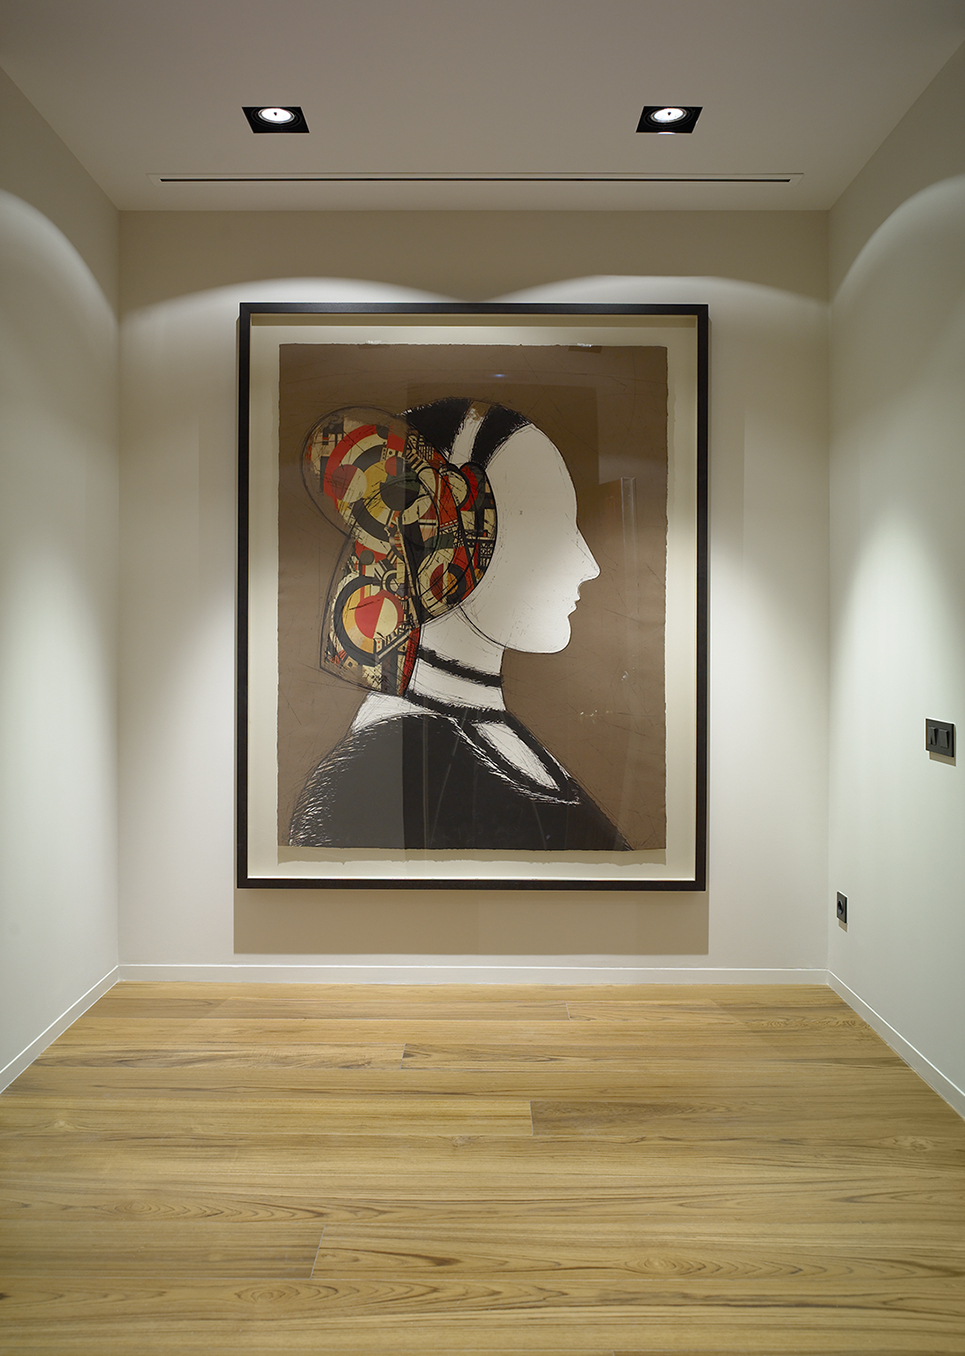 Manolo Valdés Painting in Hall